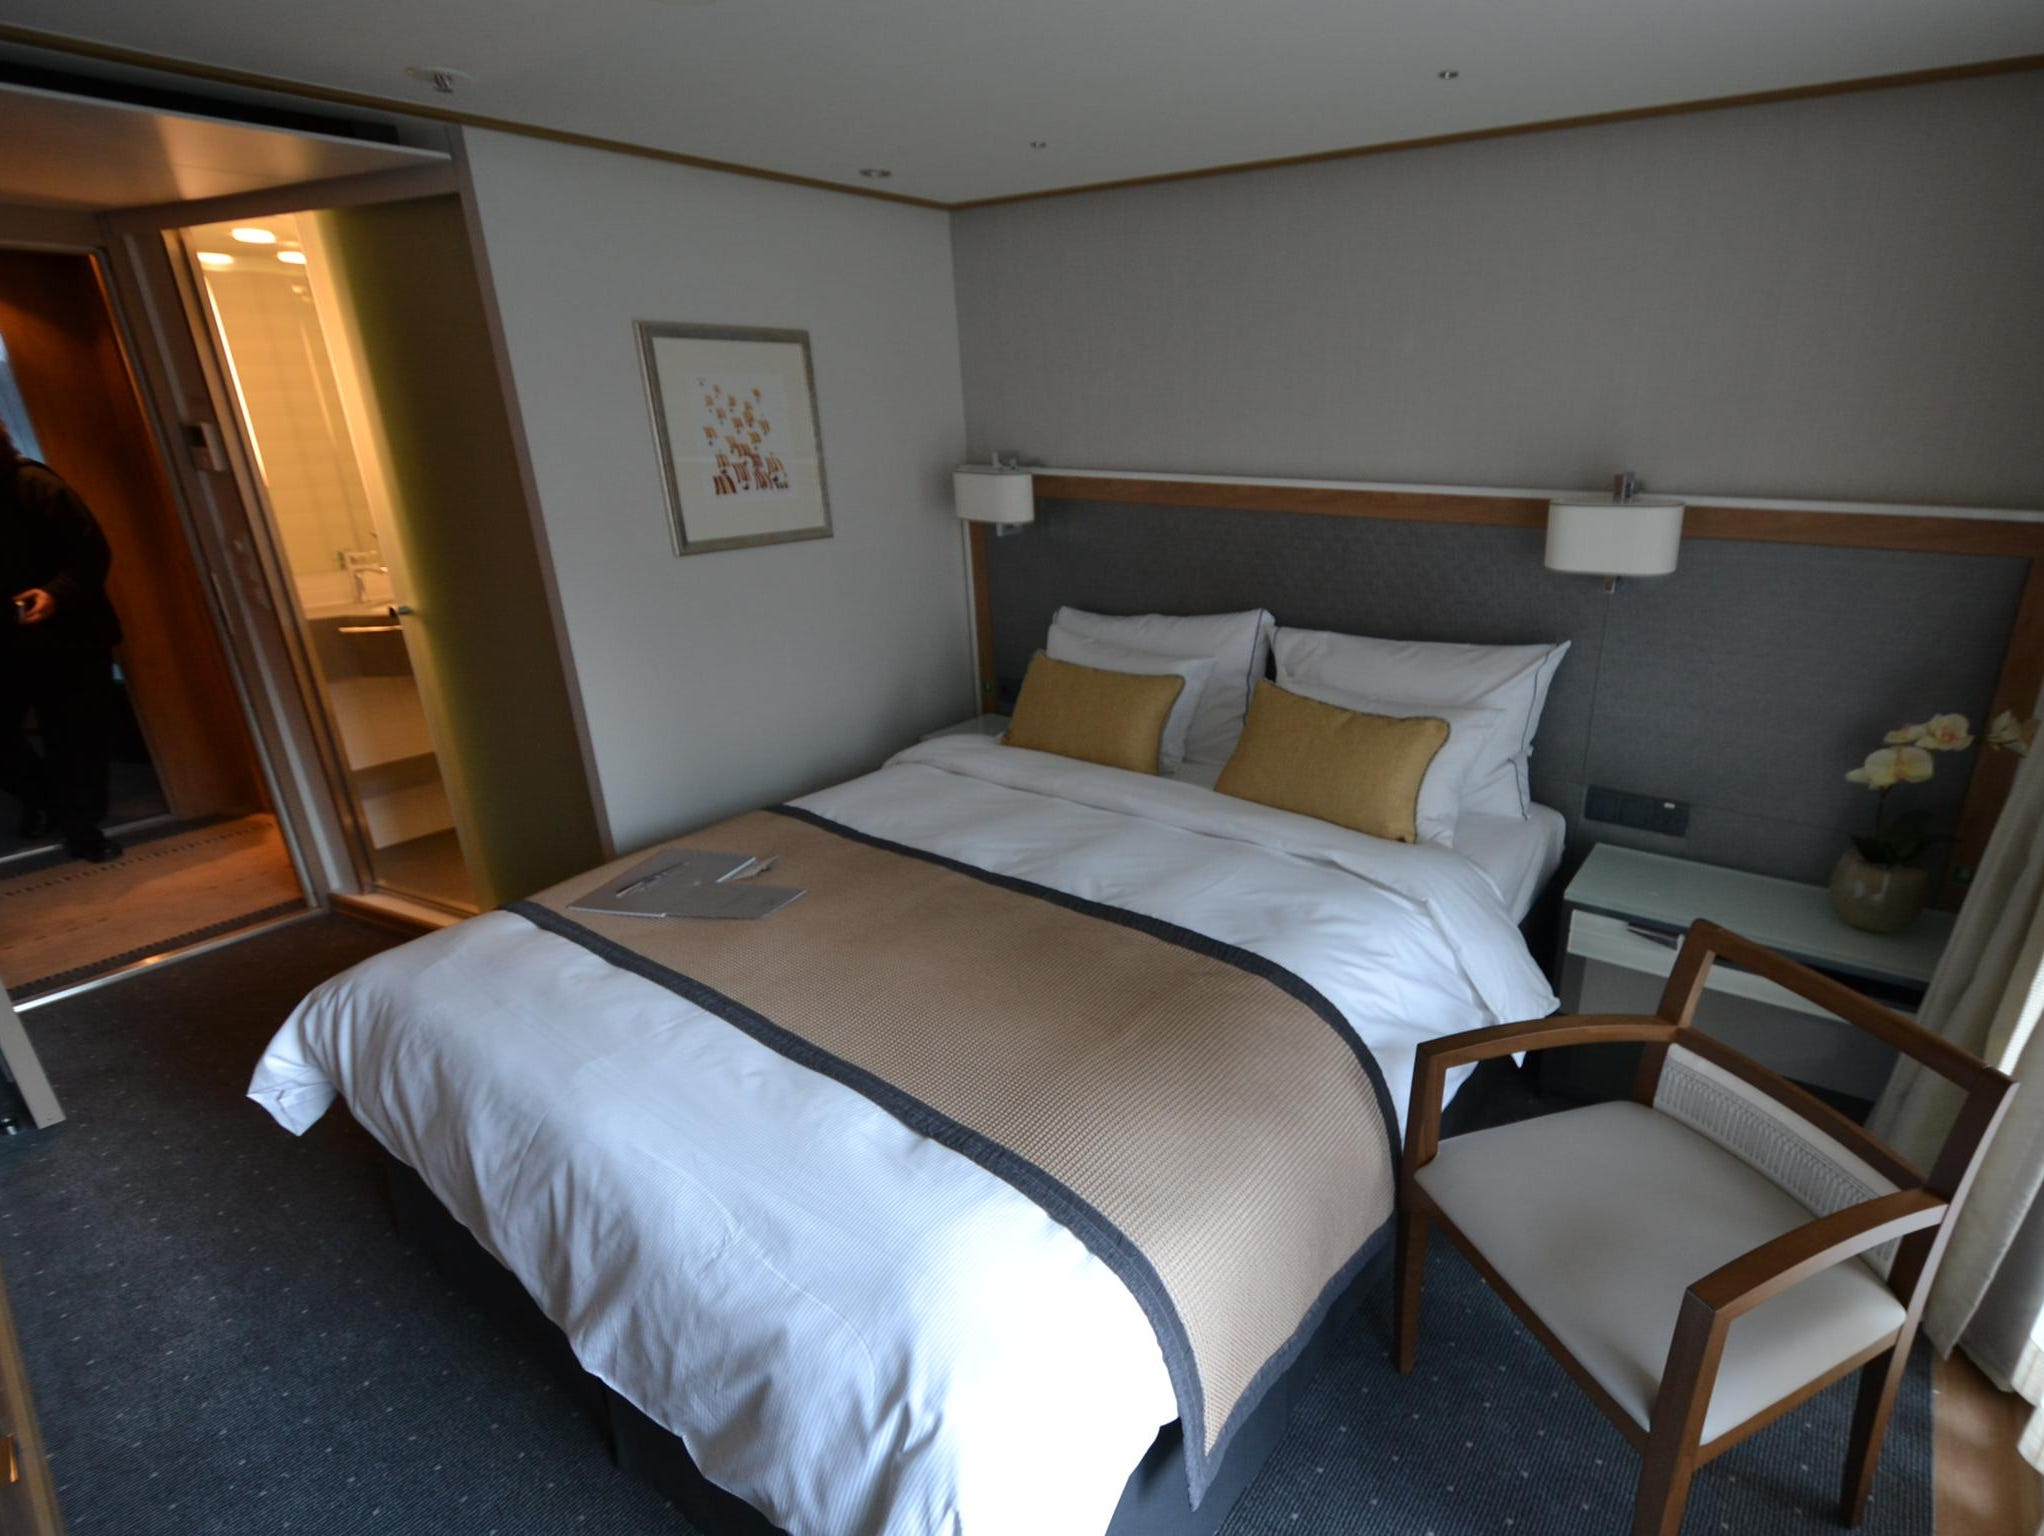 The interior of Veranda Staterooms have a bed, chair, side table, a desk area and a flat-panel television.